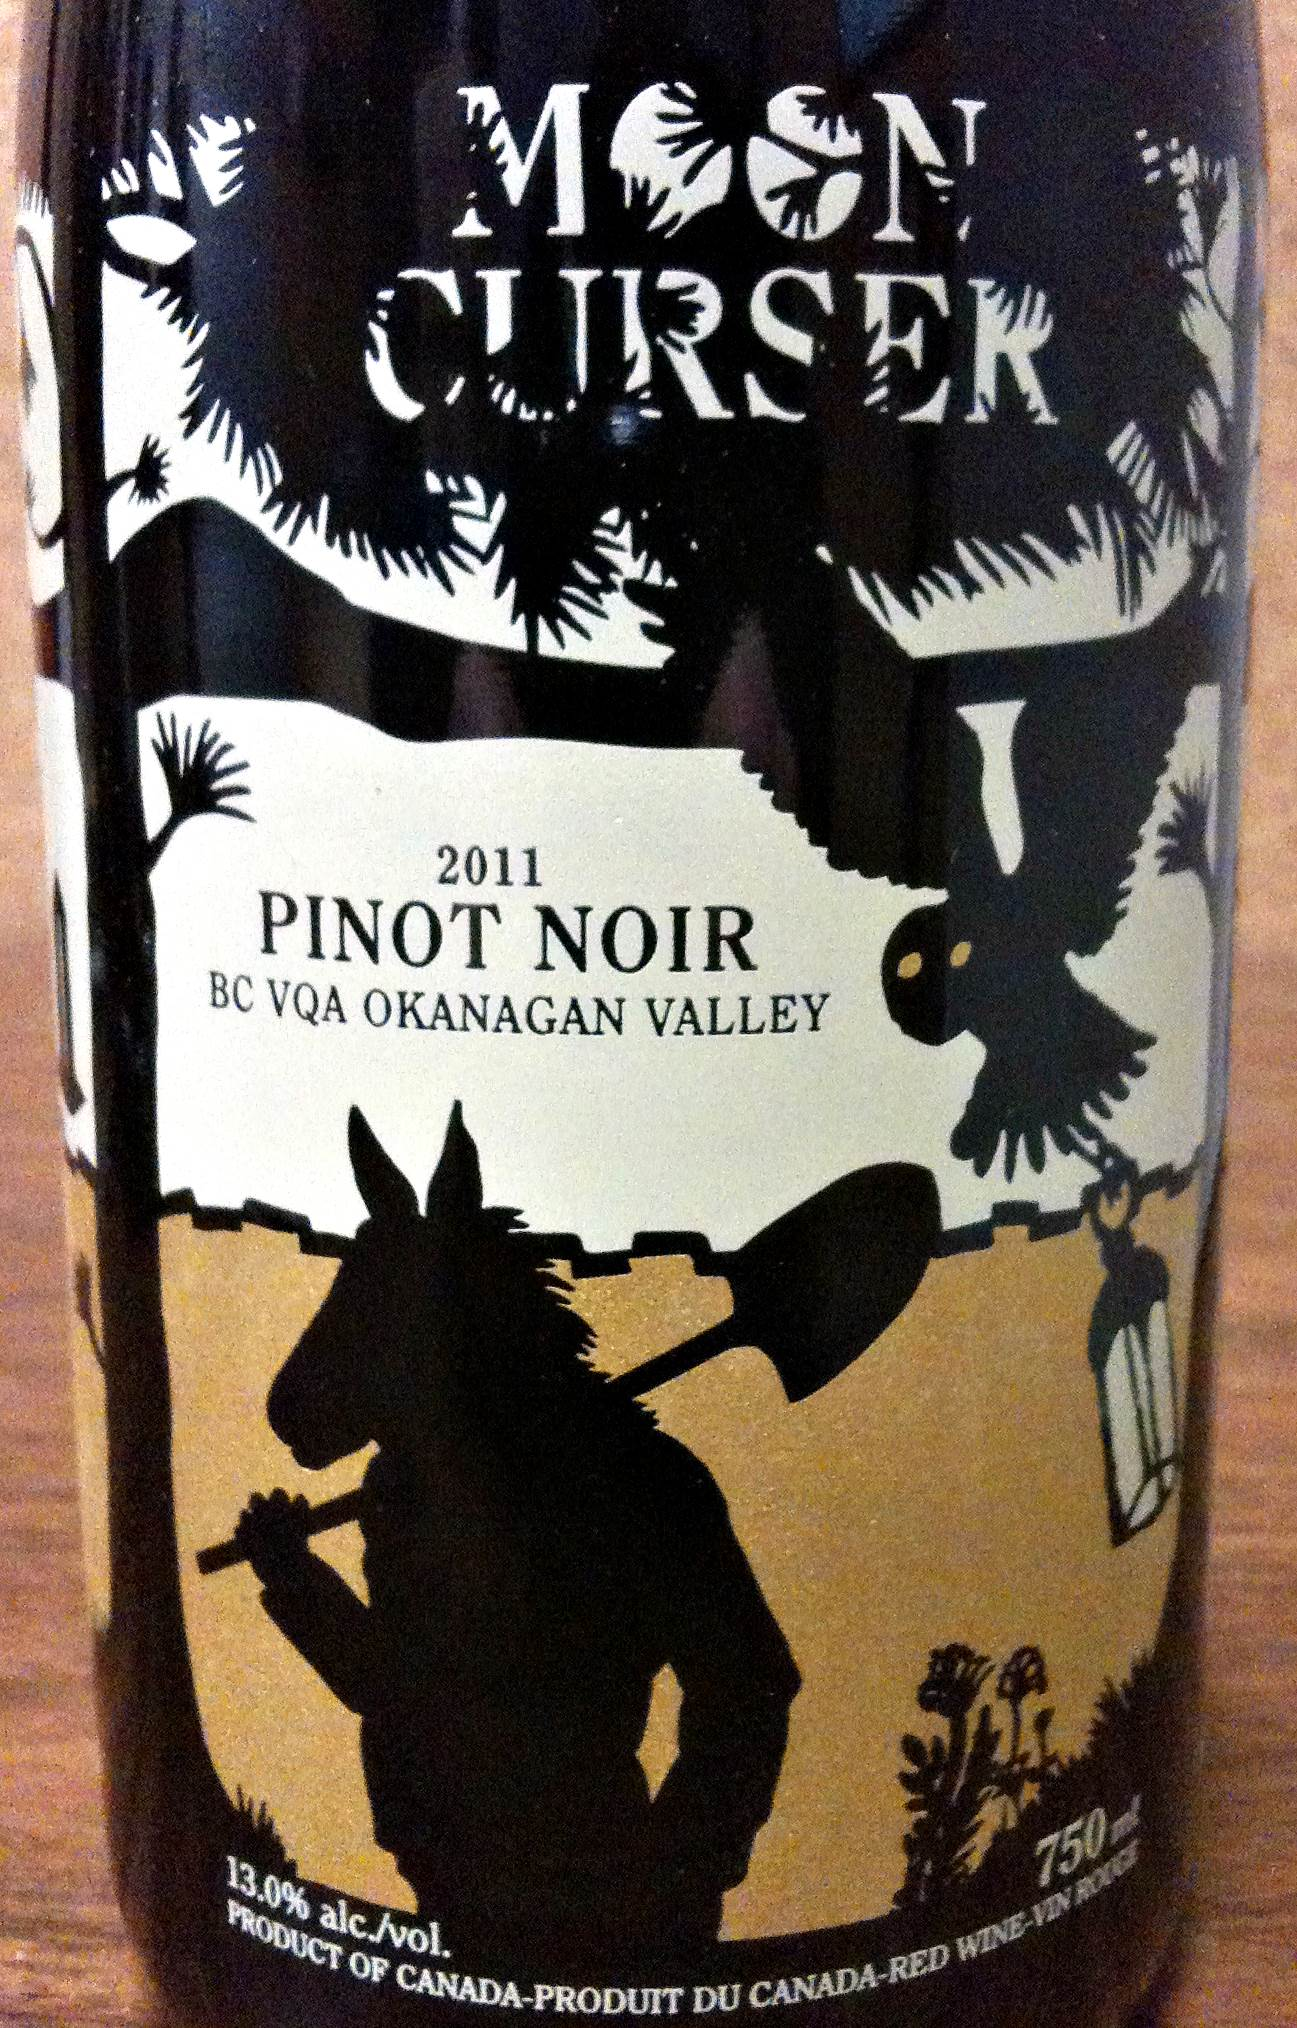 Moon Curser Pinot Noir 2011 Label - BC Pinot Noir Tasting Review 11